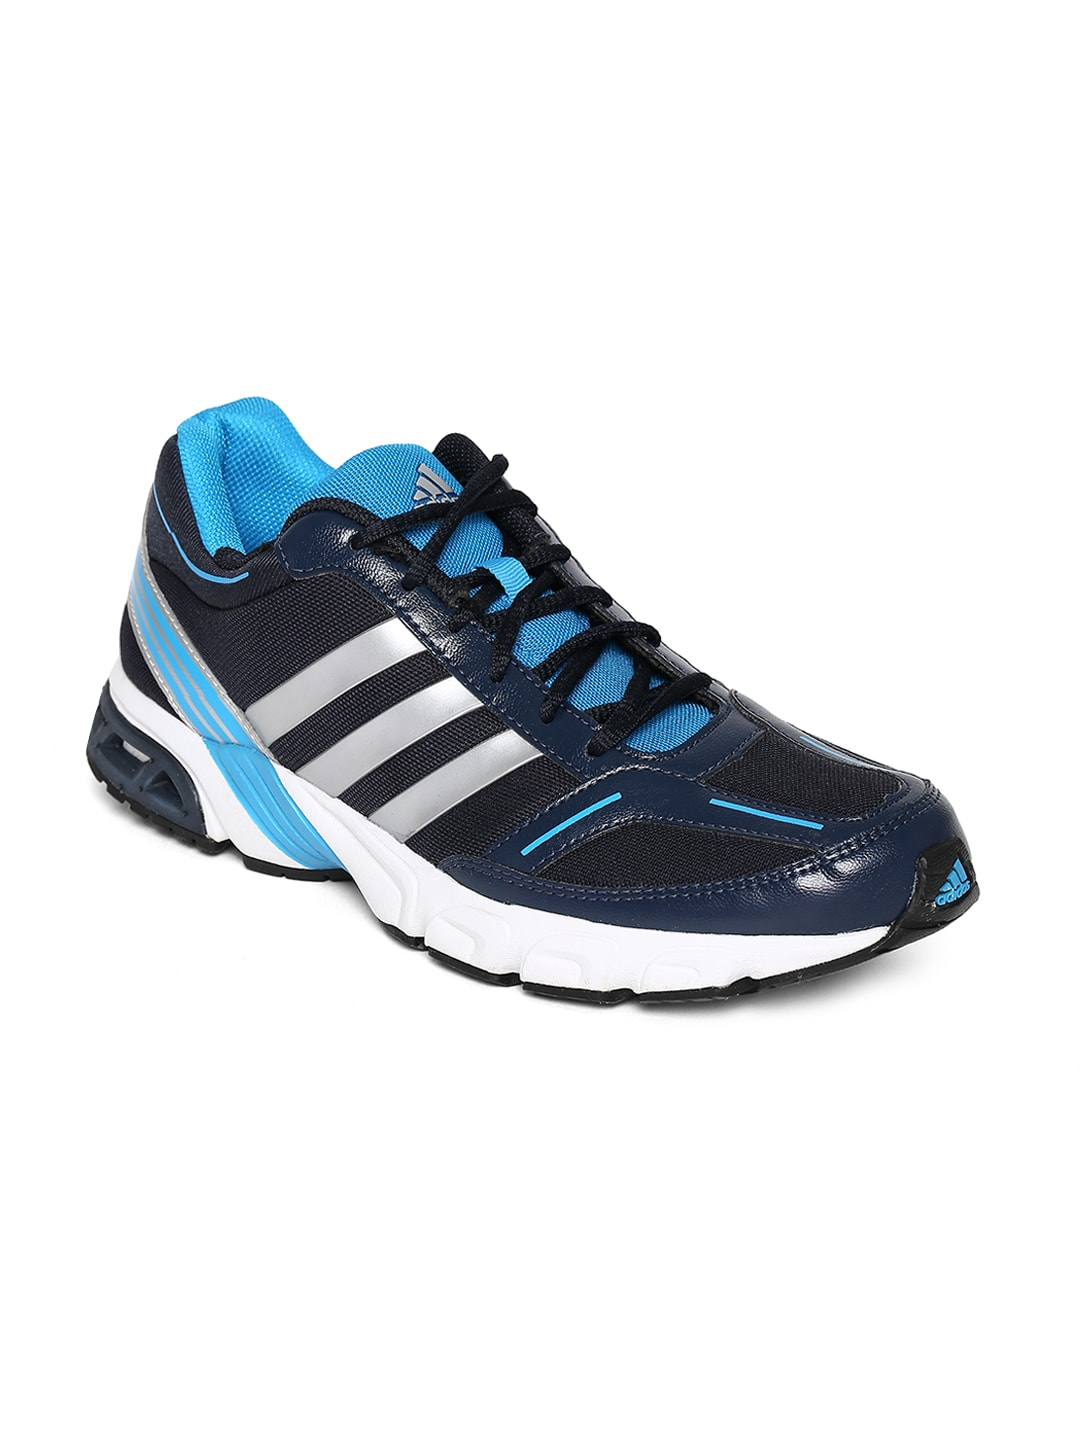 myntra sports shoes sale 28 images buy black hyperazzo